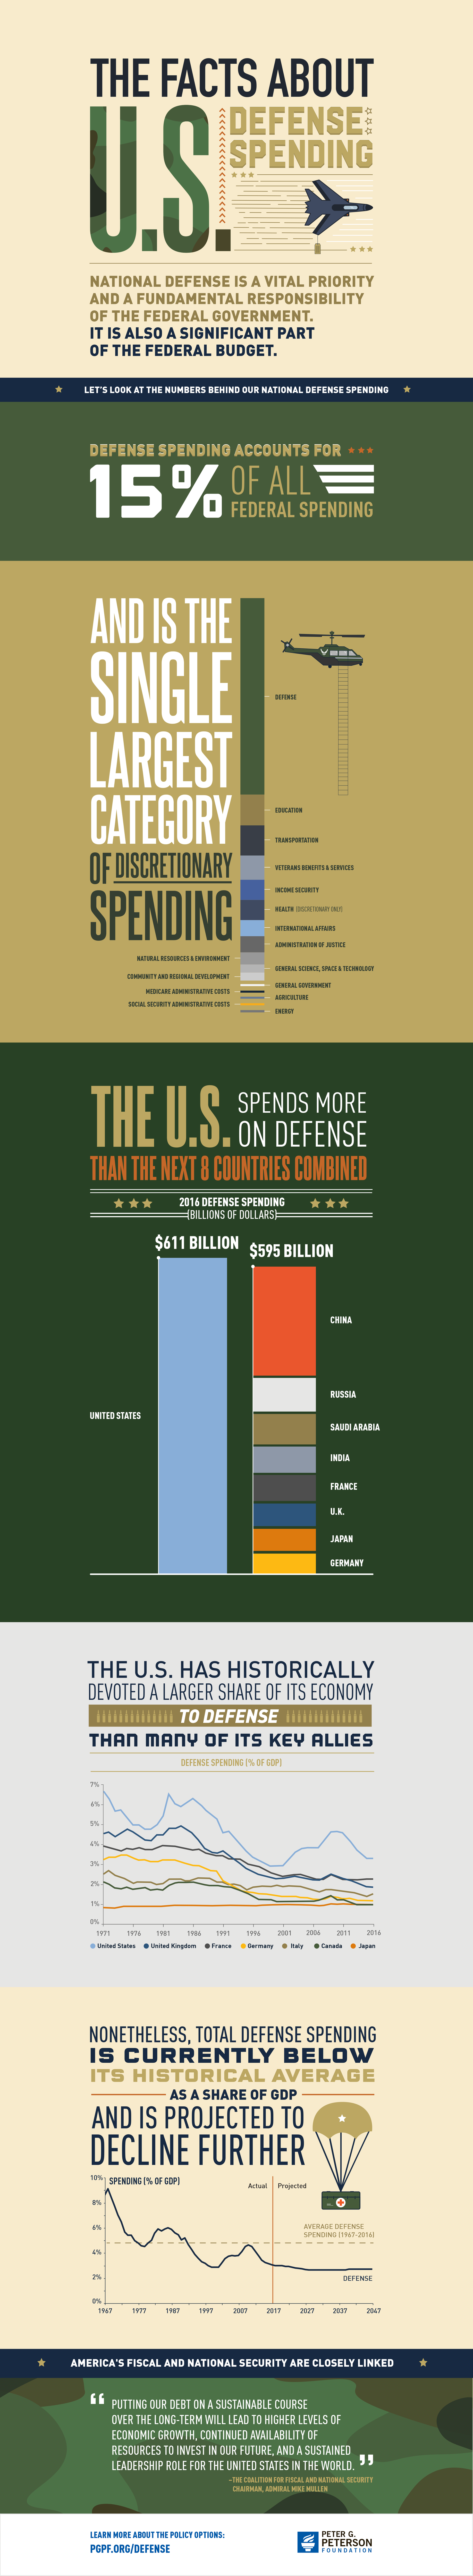 The Facts about U.S. Defense Spending